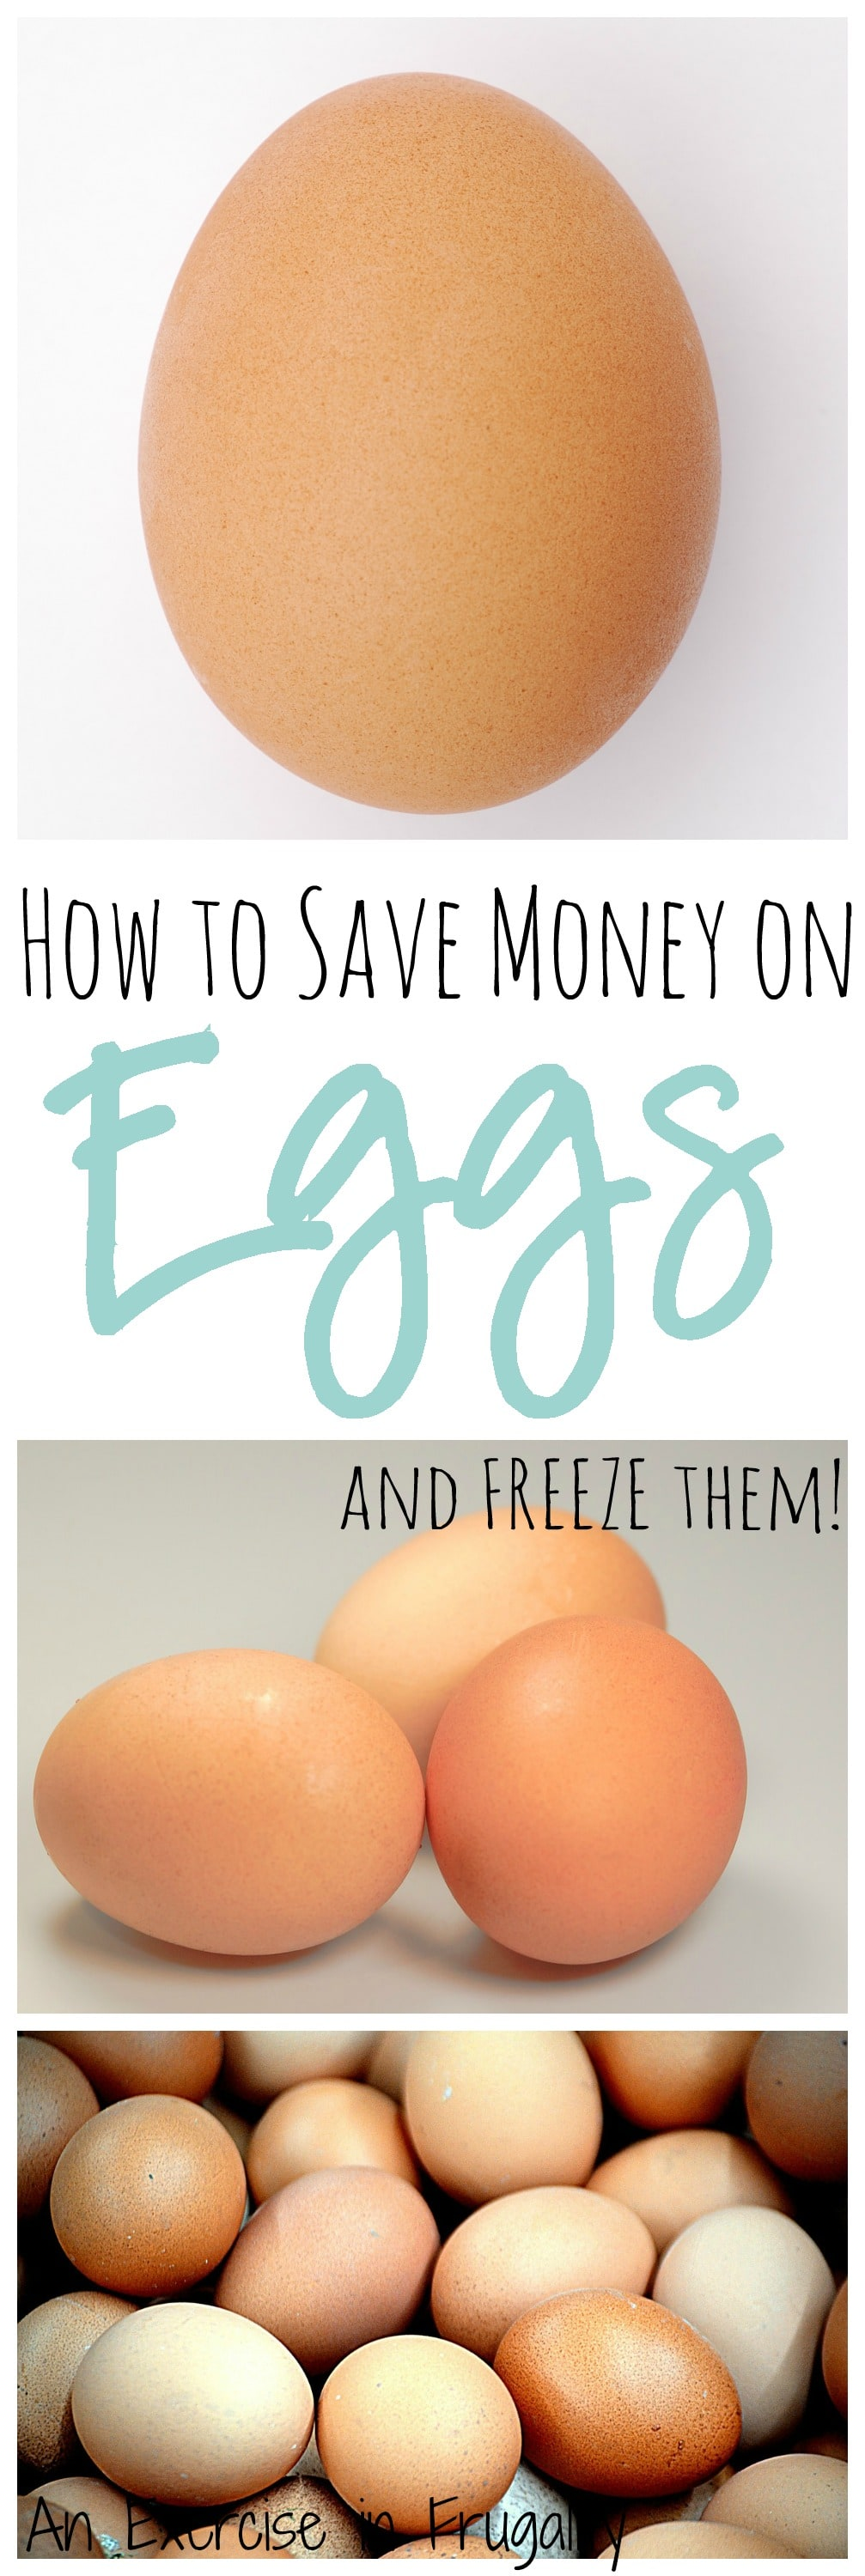 how to save money on eggs and freeze them